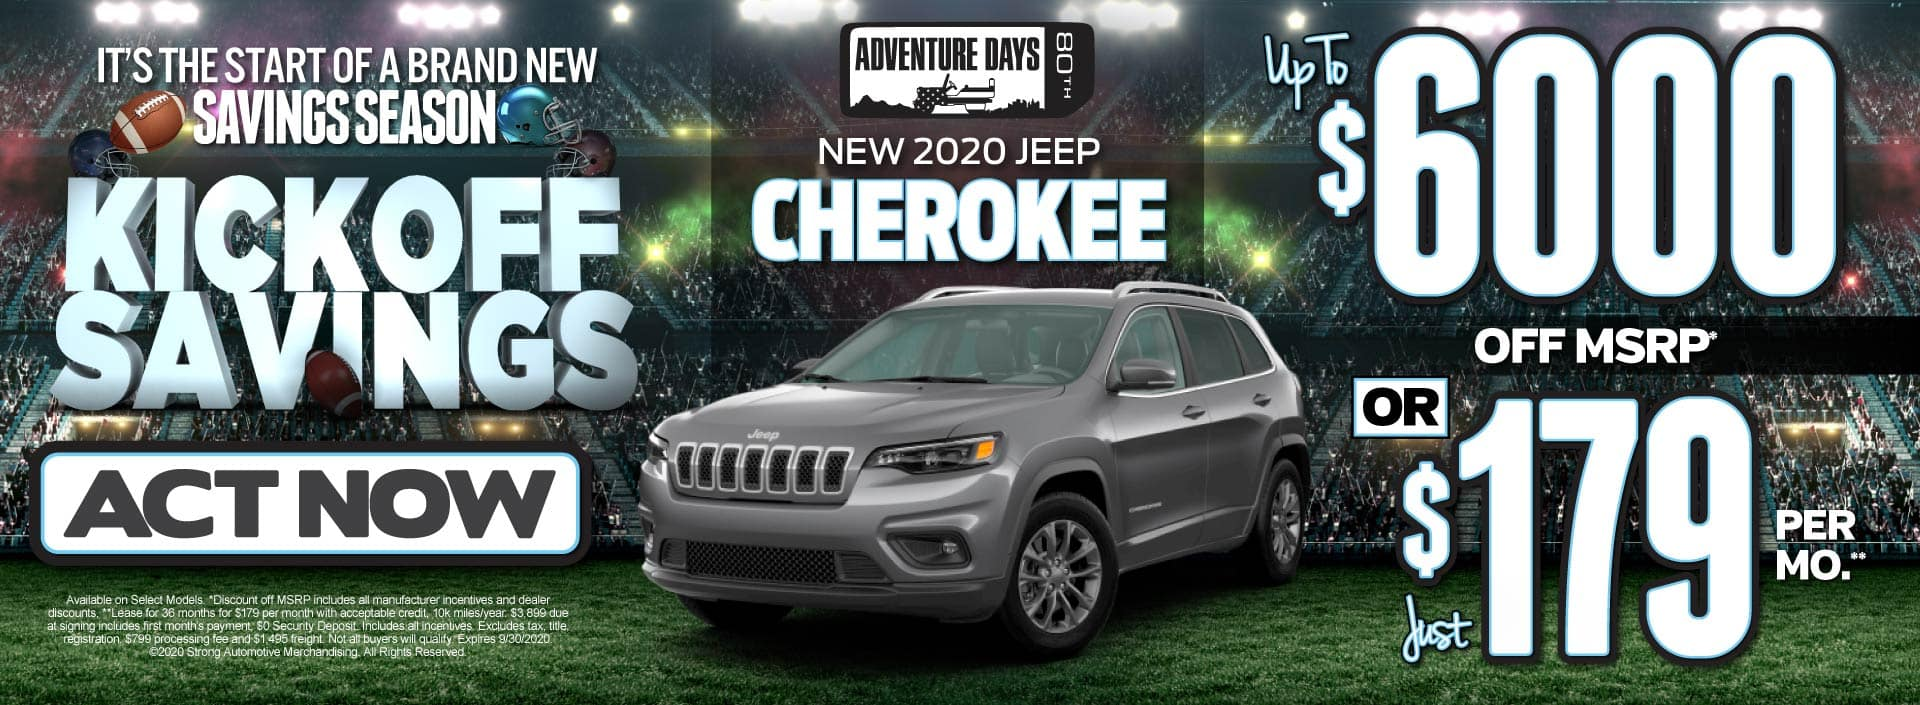 New 2020 Jeep Cherokee - up to $6000 off MSRP or just $179 per month - Click to View Inventory